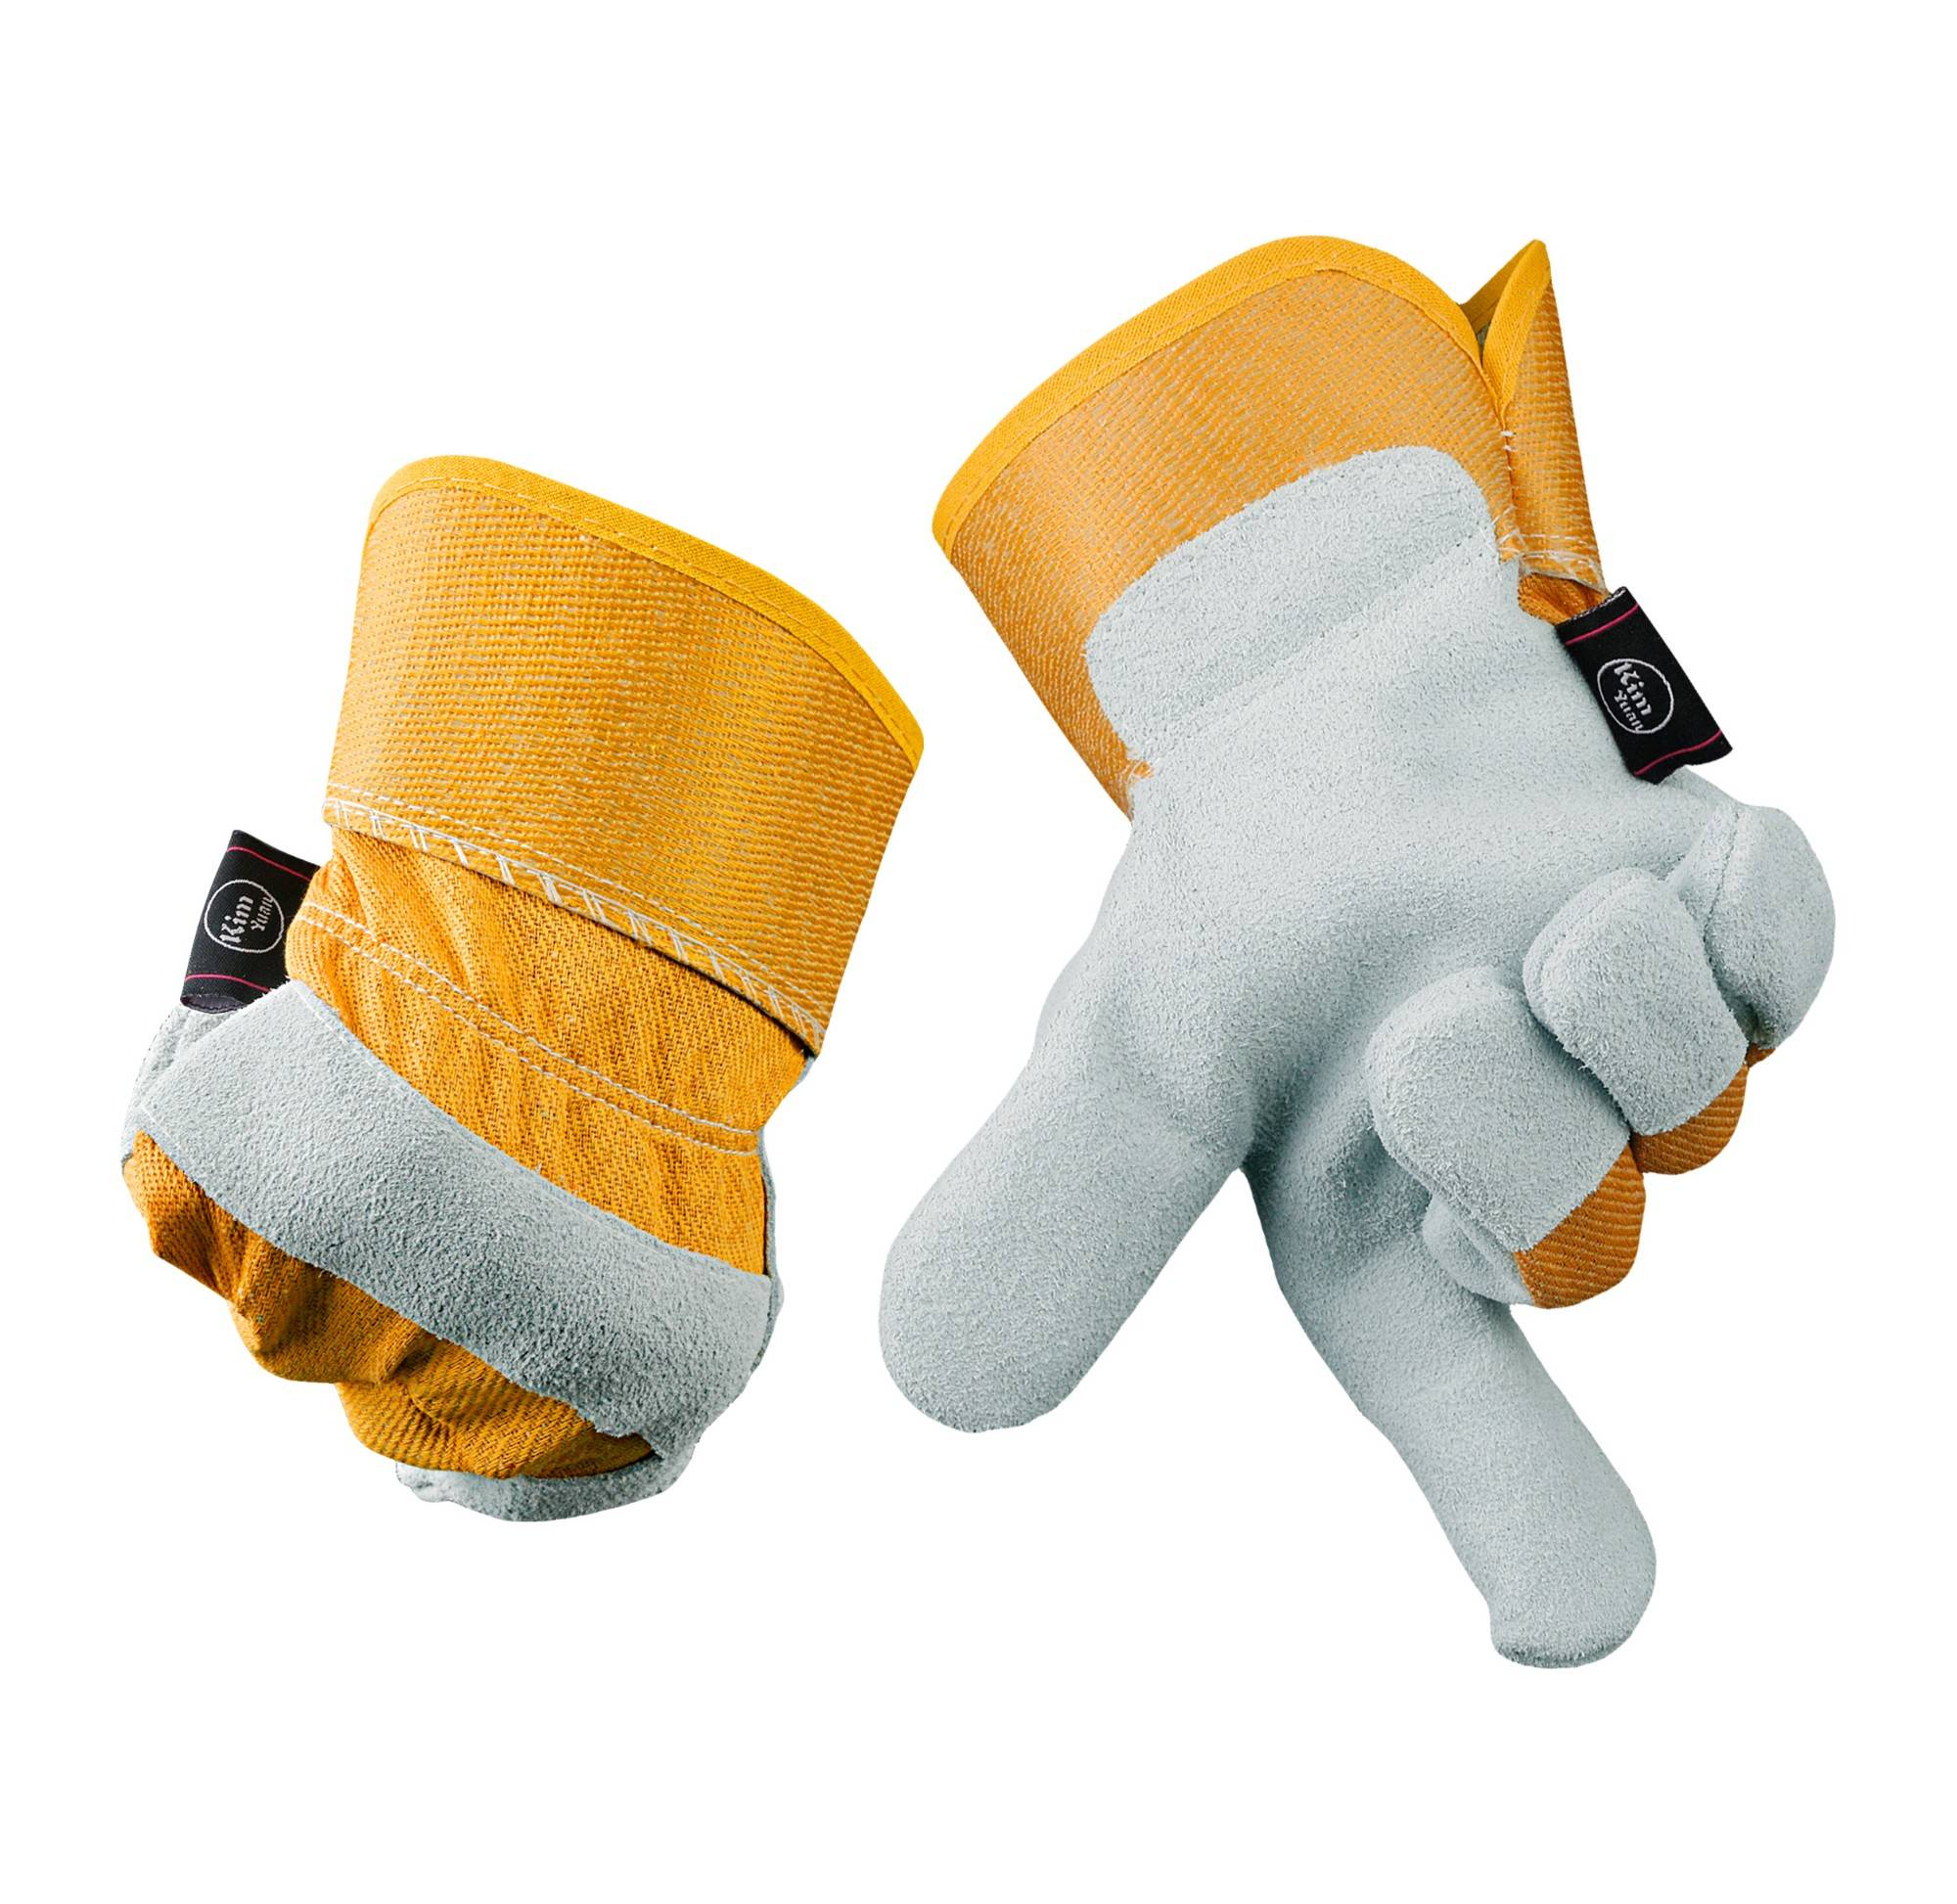 KIM YUAN  Yellow Leather Work Gloves, Anti-slippery & Dirt-resistant, Perfect for Construction/Motorcycle/Yard work,Men&Women